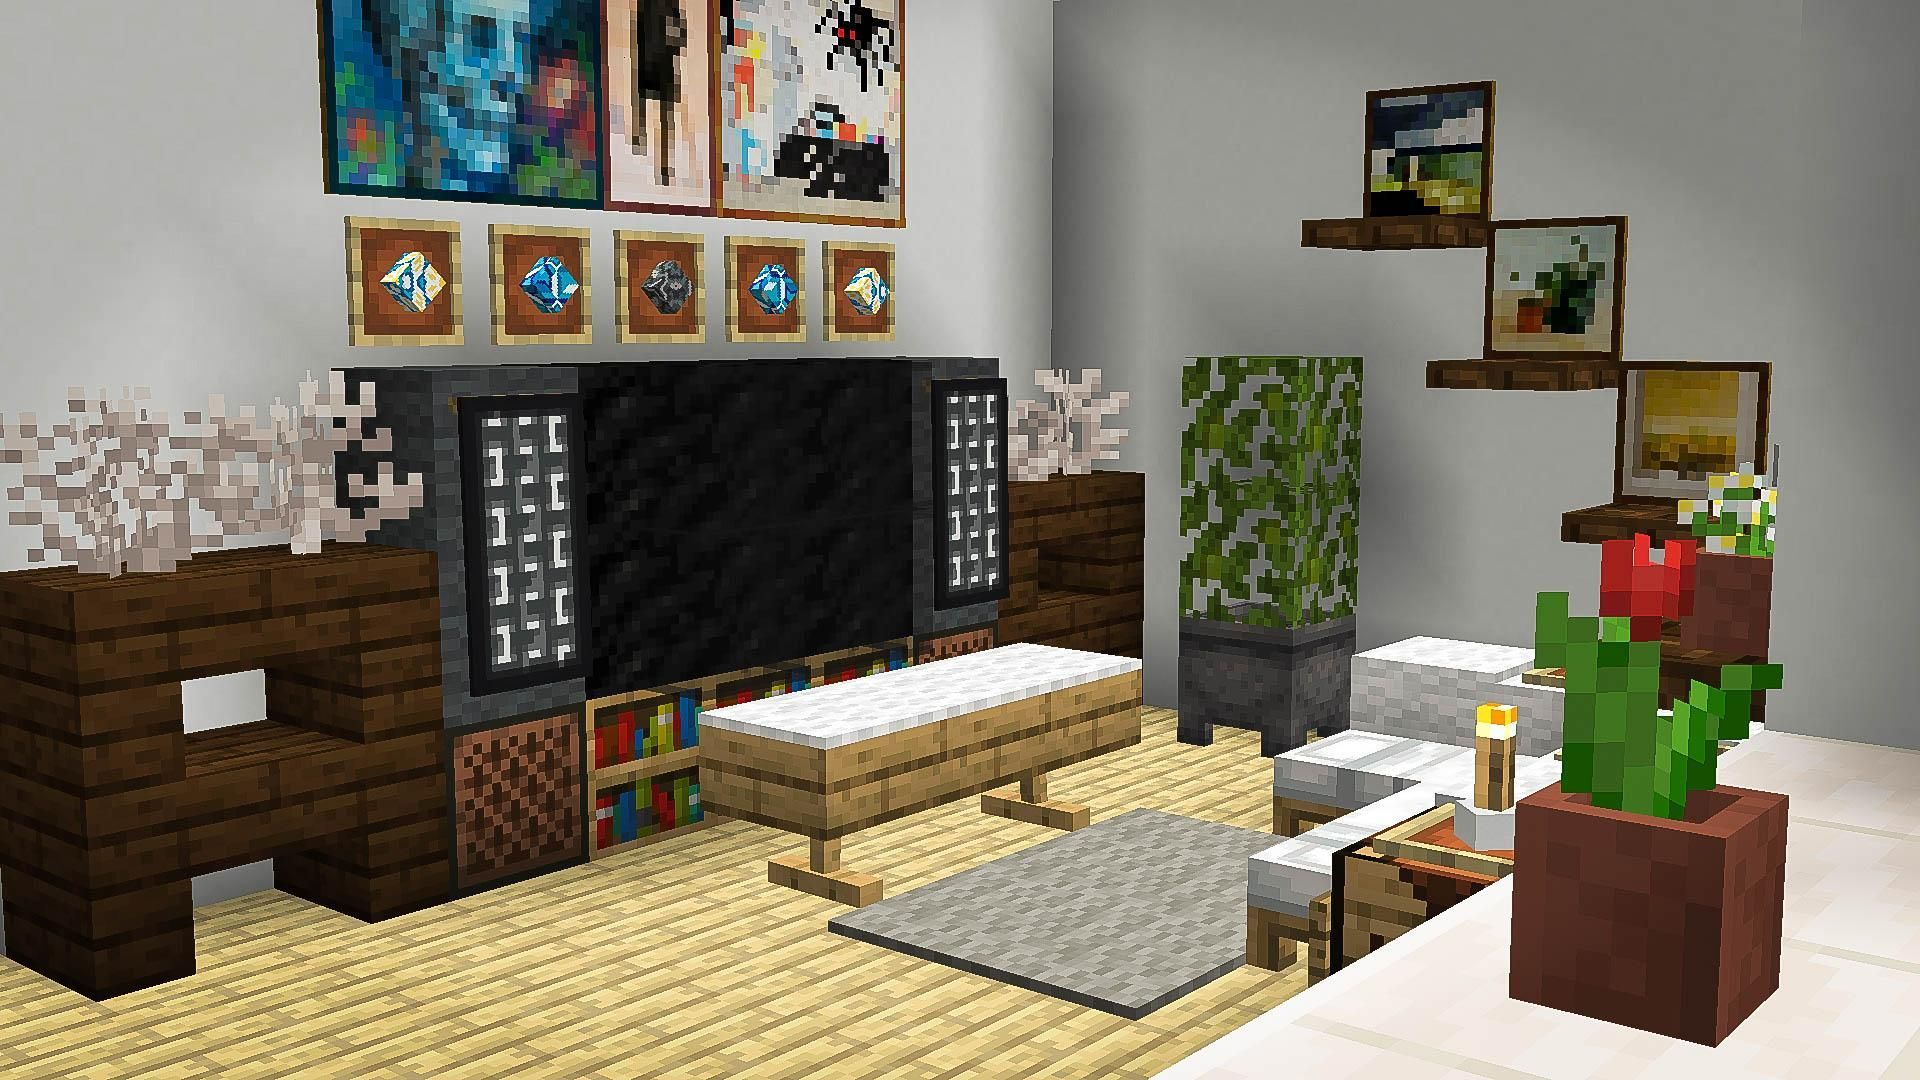 A Bright Living Room Minecraft Minecraft Bedroom Minecraft